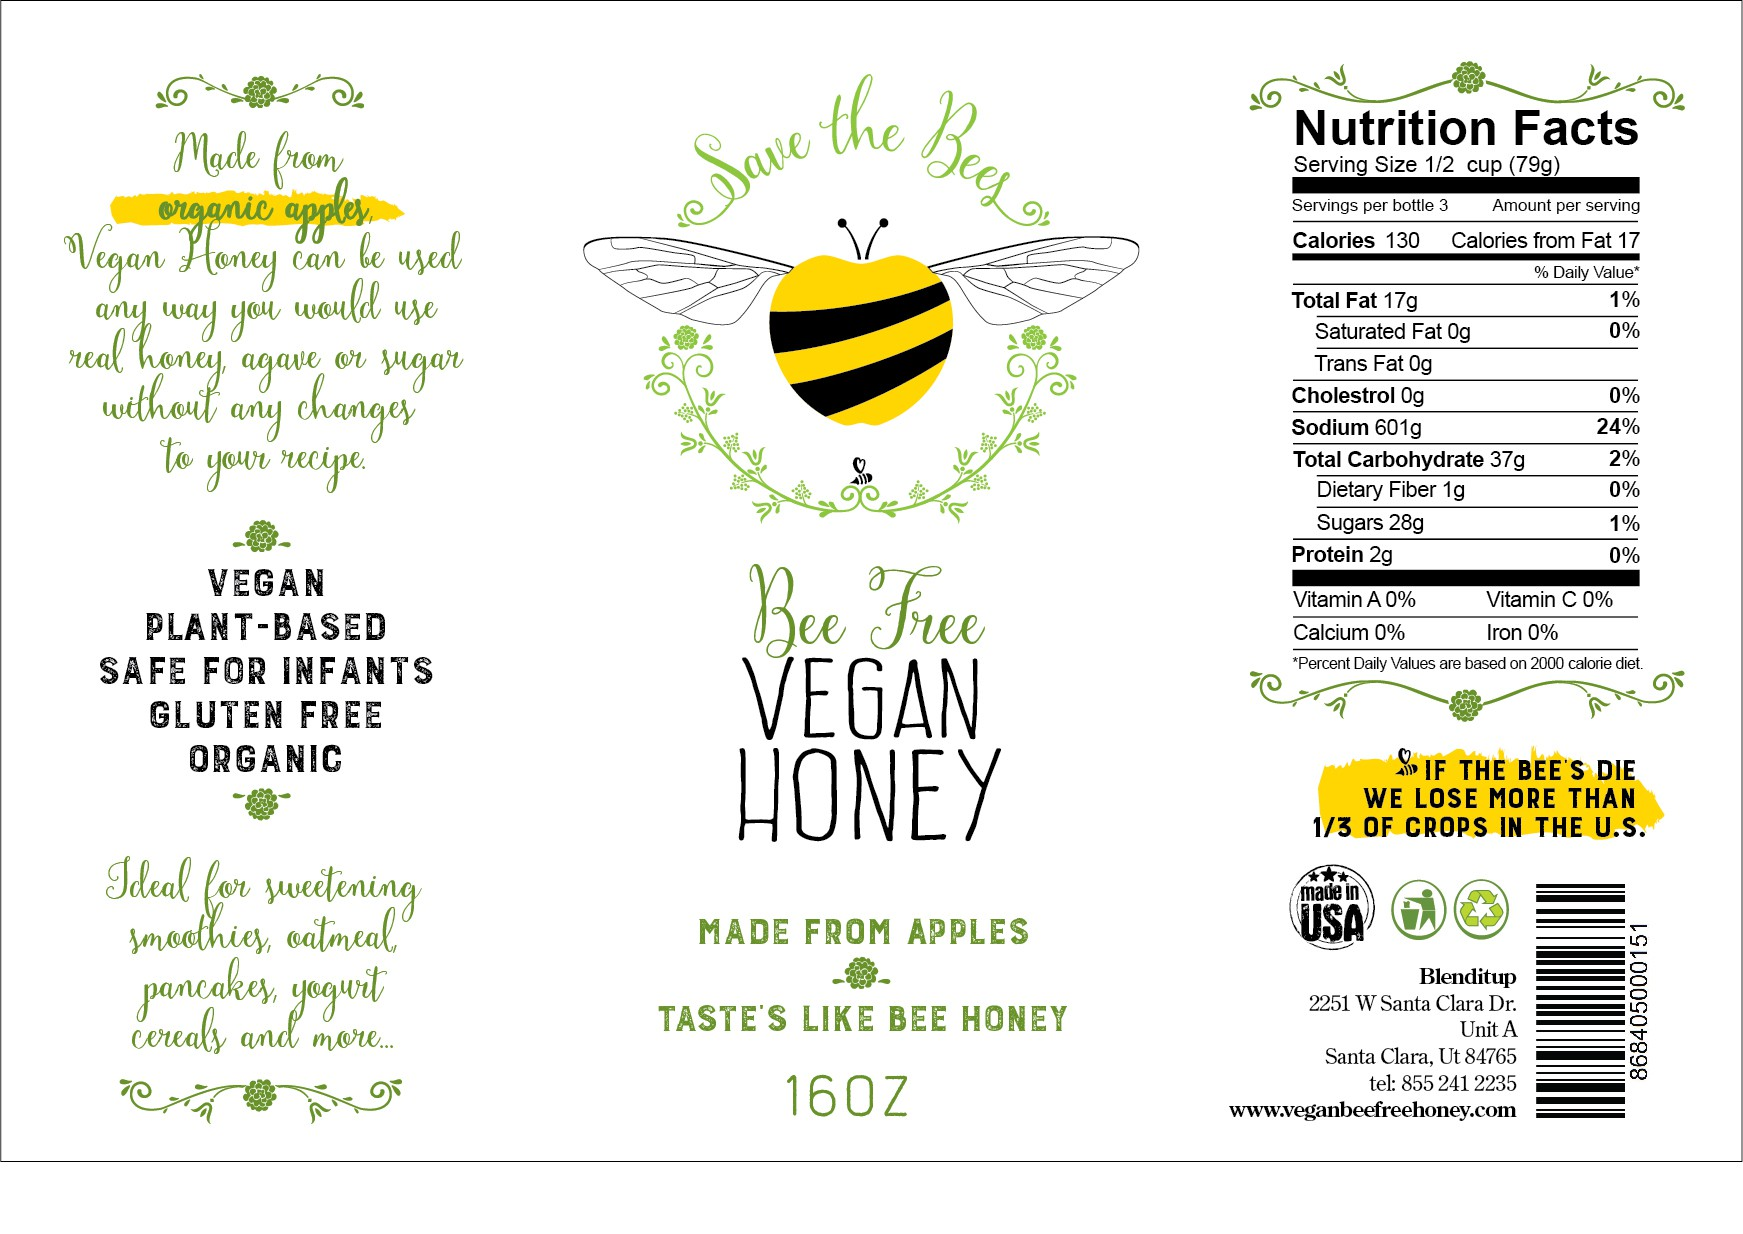 Create an eye-catching label for a bee-free vegan honey.